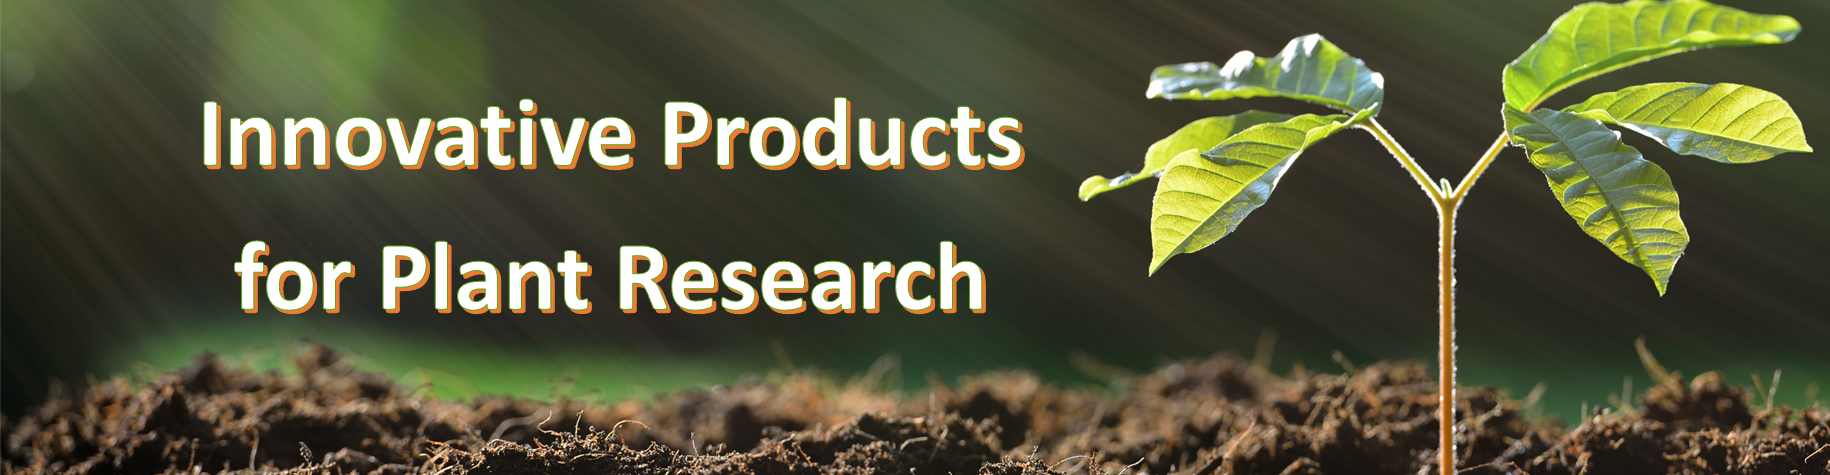 innovative producs for plant research